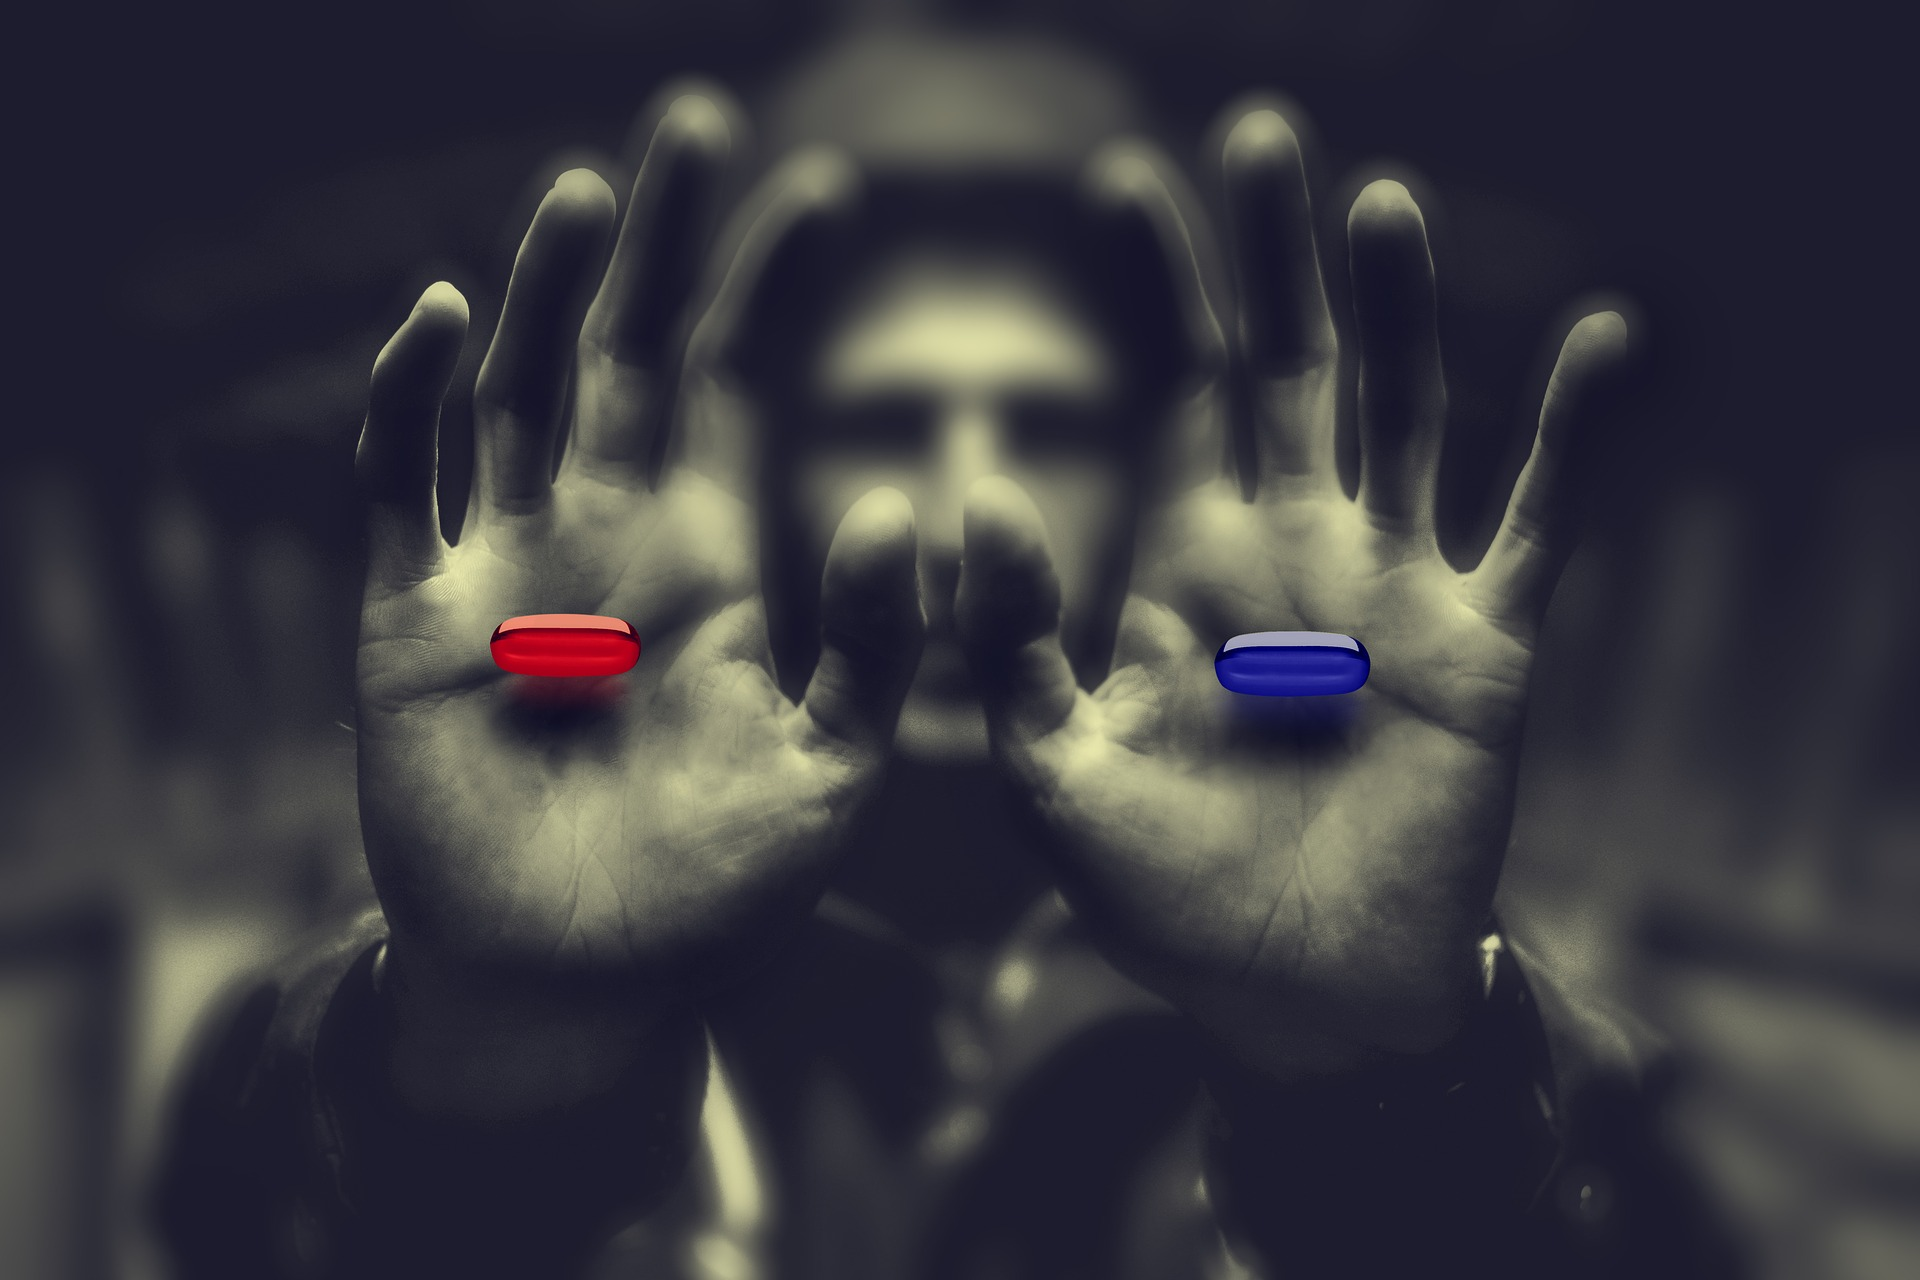 The MGTOW Movement & Red Pill Forums: Why to Move Beyond Them   